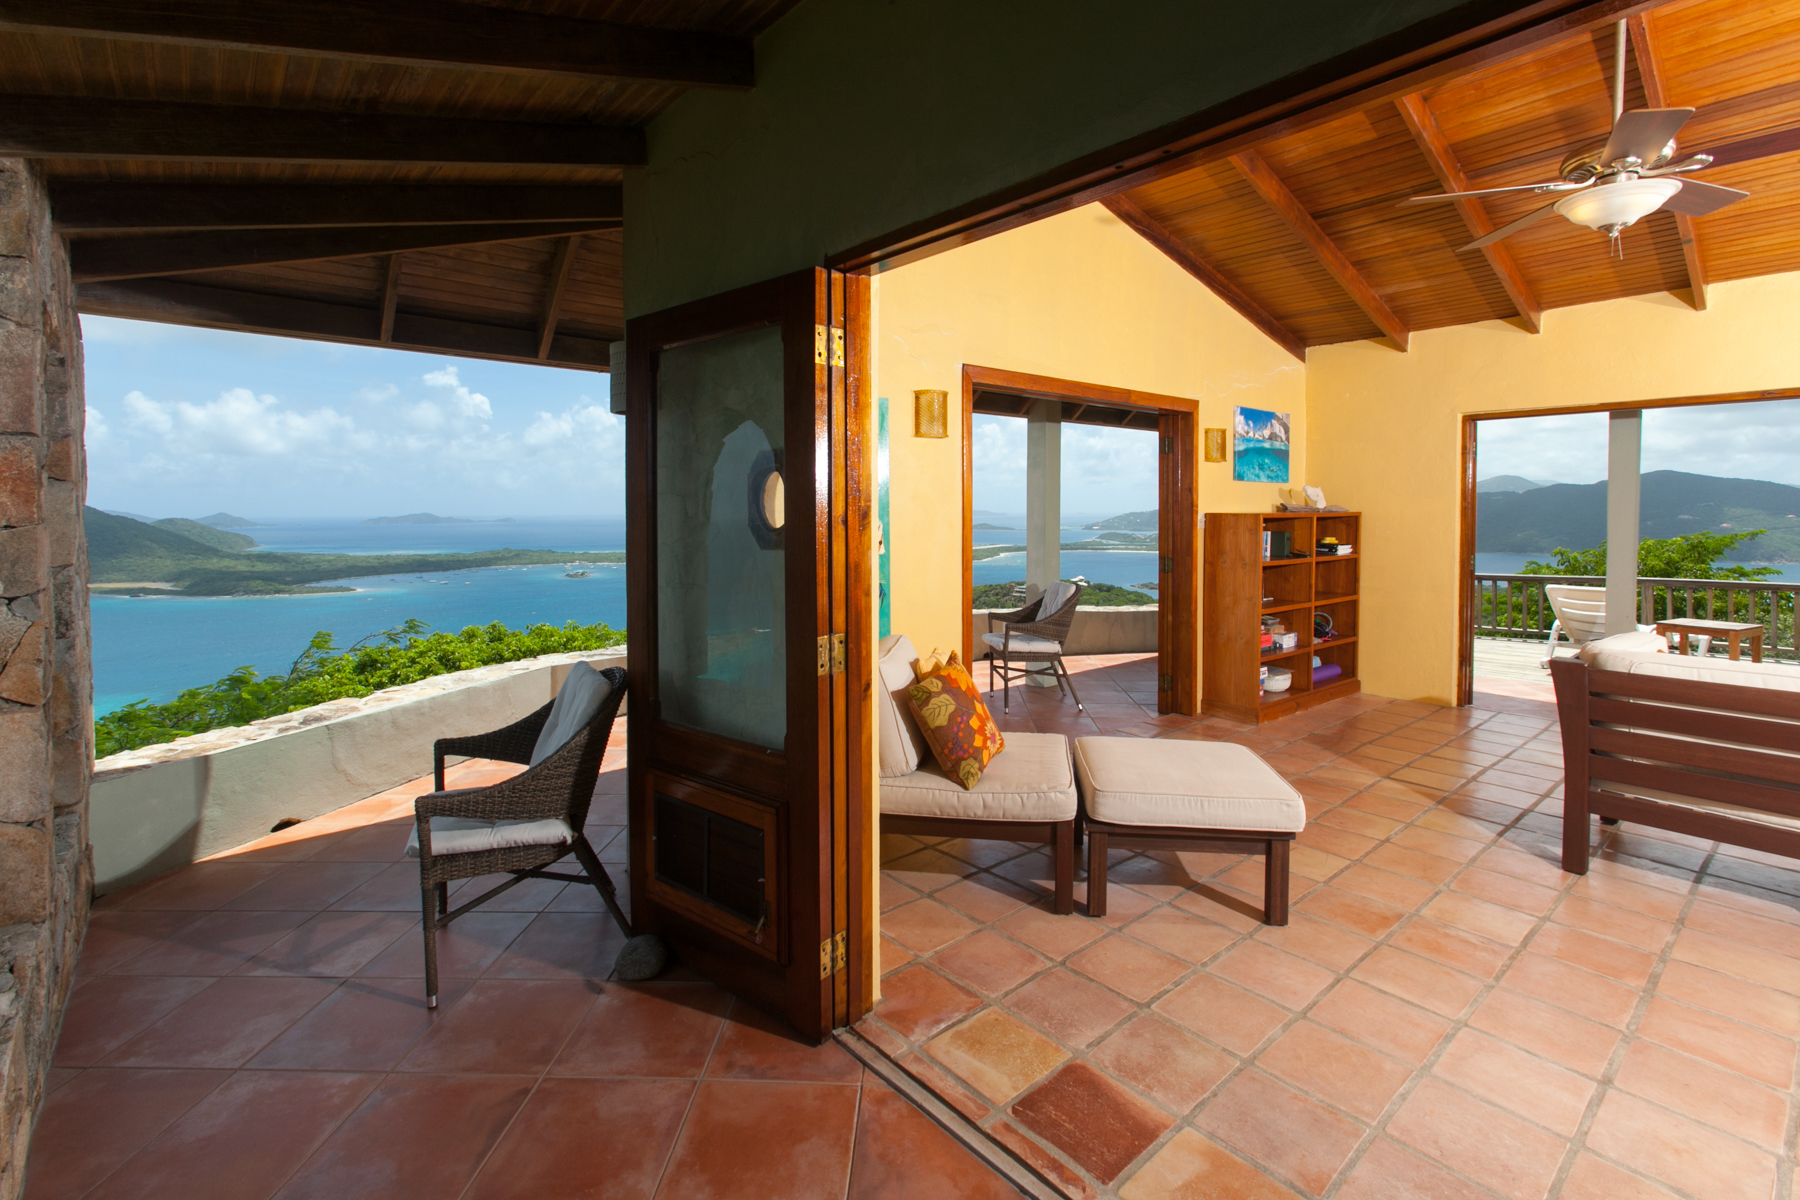 House for Sale at Stargazer Privateers Bay, Great Camanoe British Virgin Islands